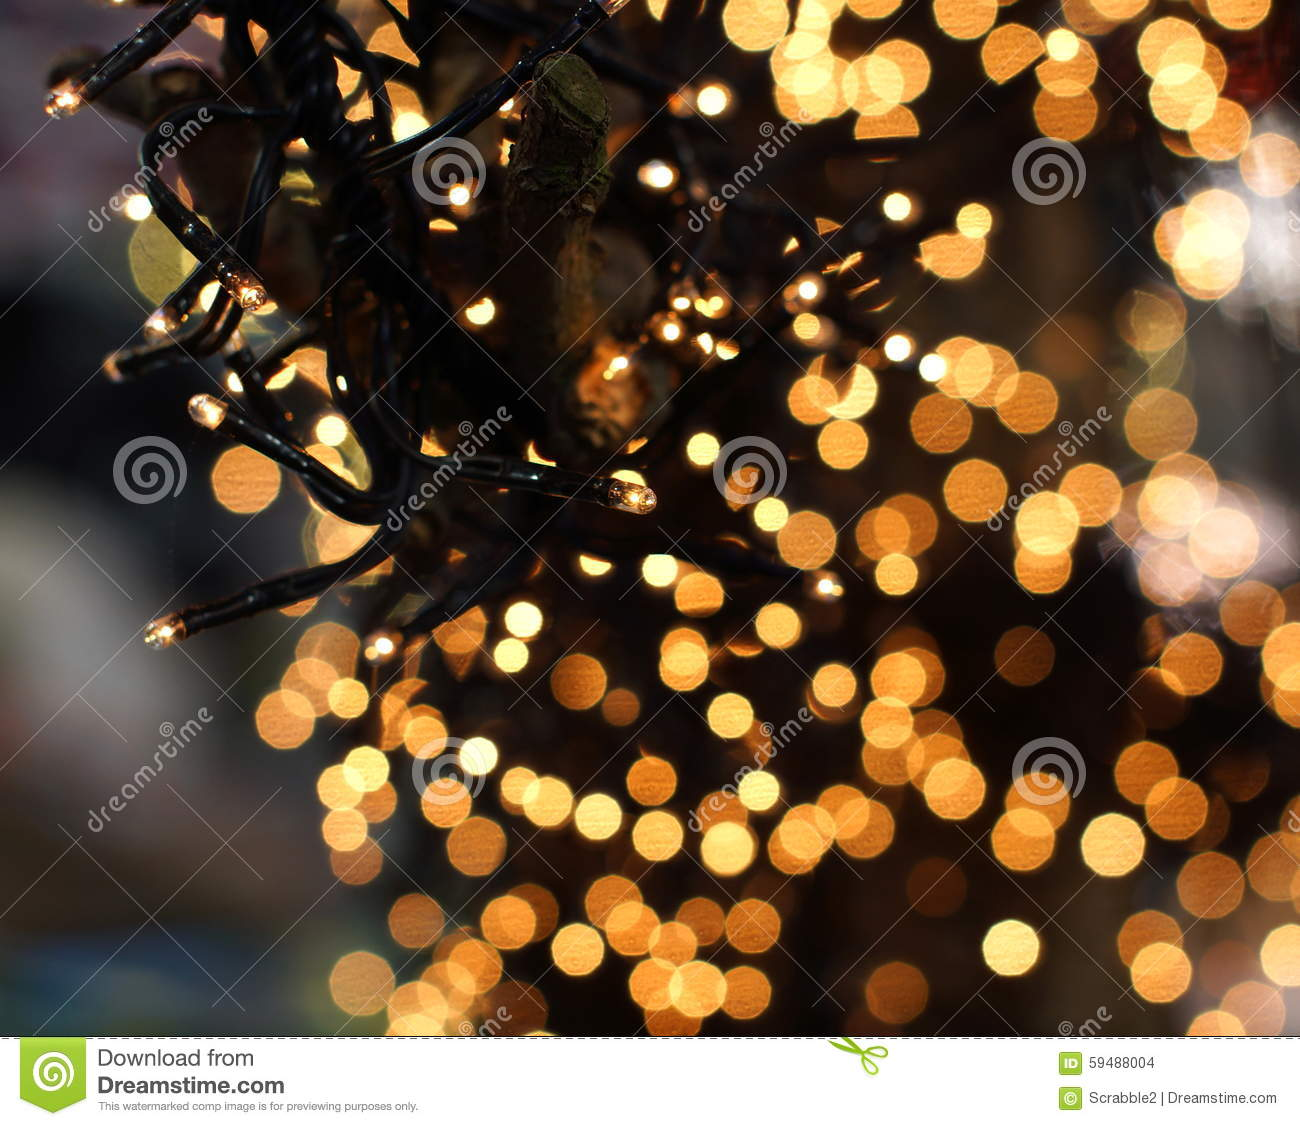 Beautiful christmas lights - Christmas Lights Hanging In A Tree Stock Photo